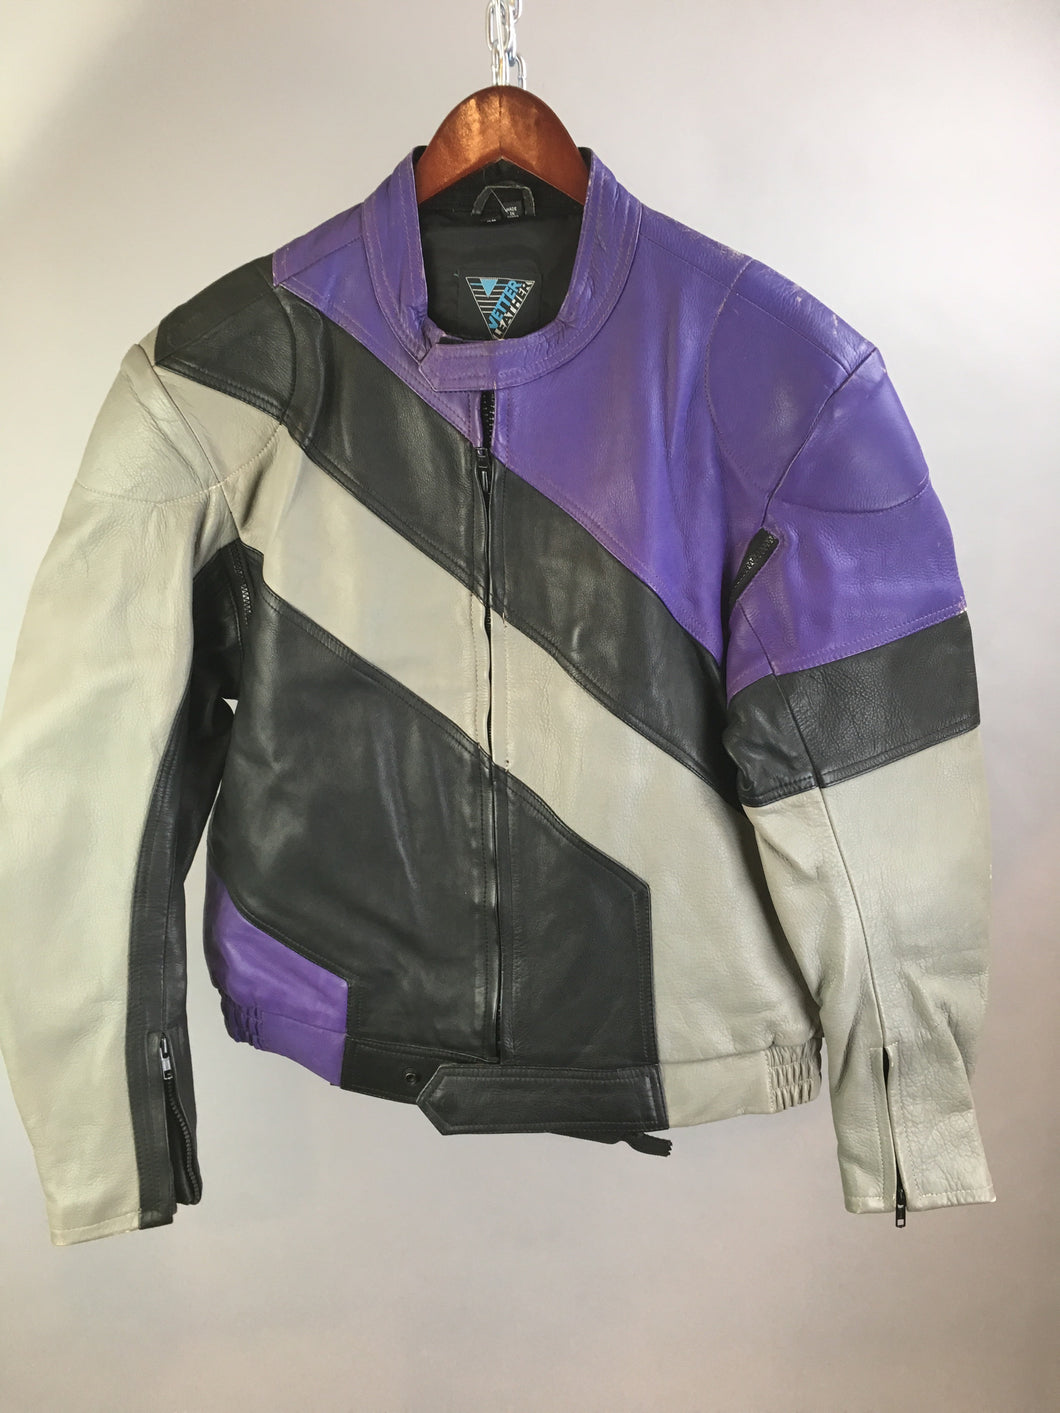 Vintage Leather Motorcycle Jacket// 80s Sport Bike Jacket// Purple and Gray Motorcycle Jacket(F1)